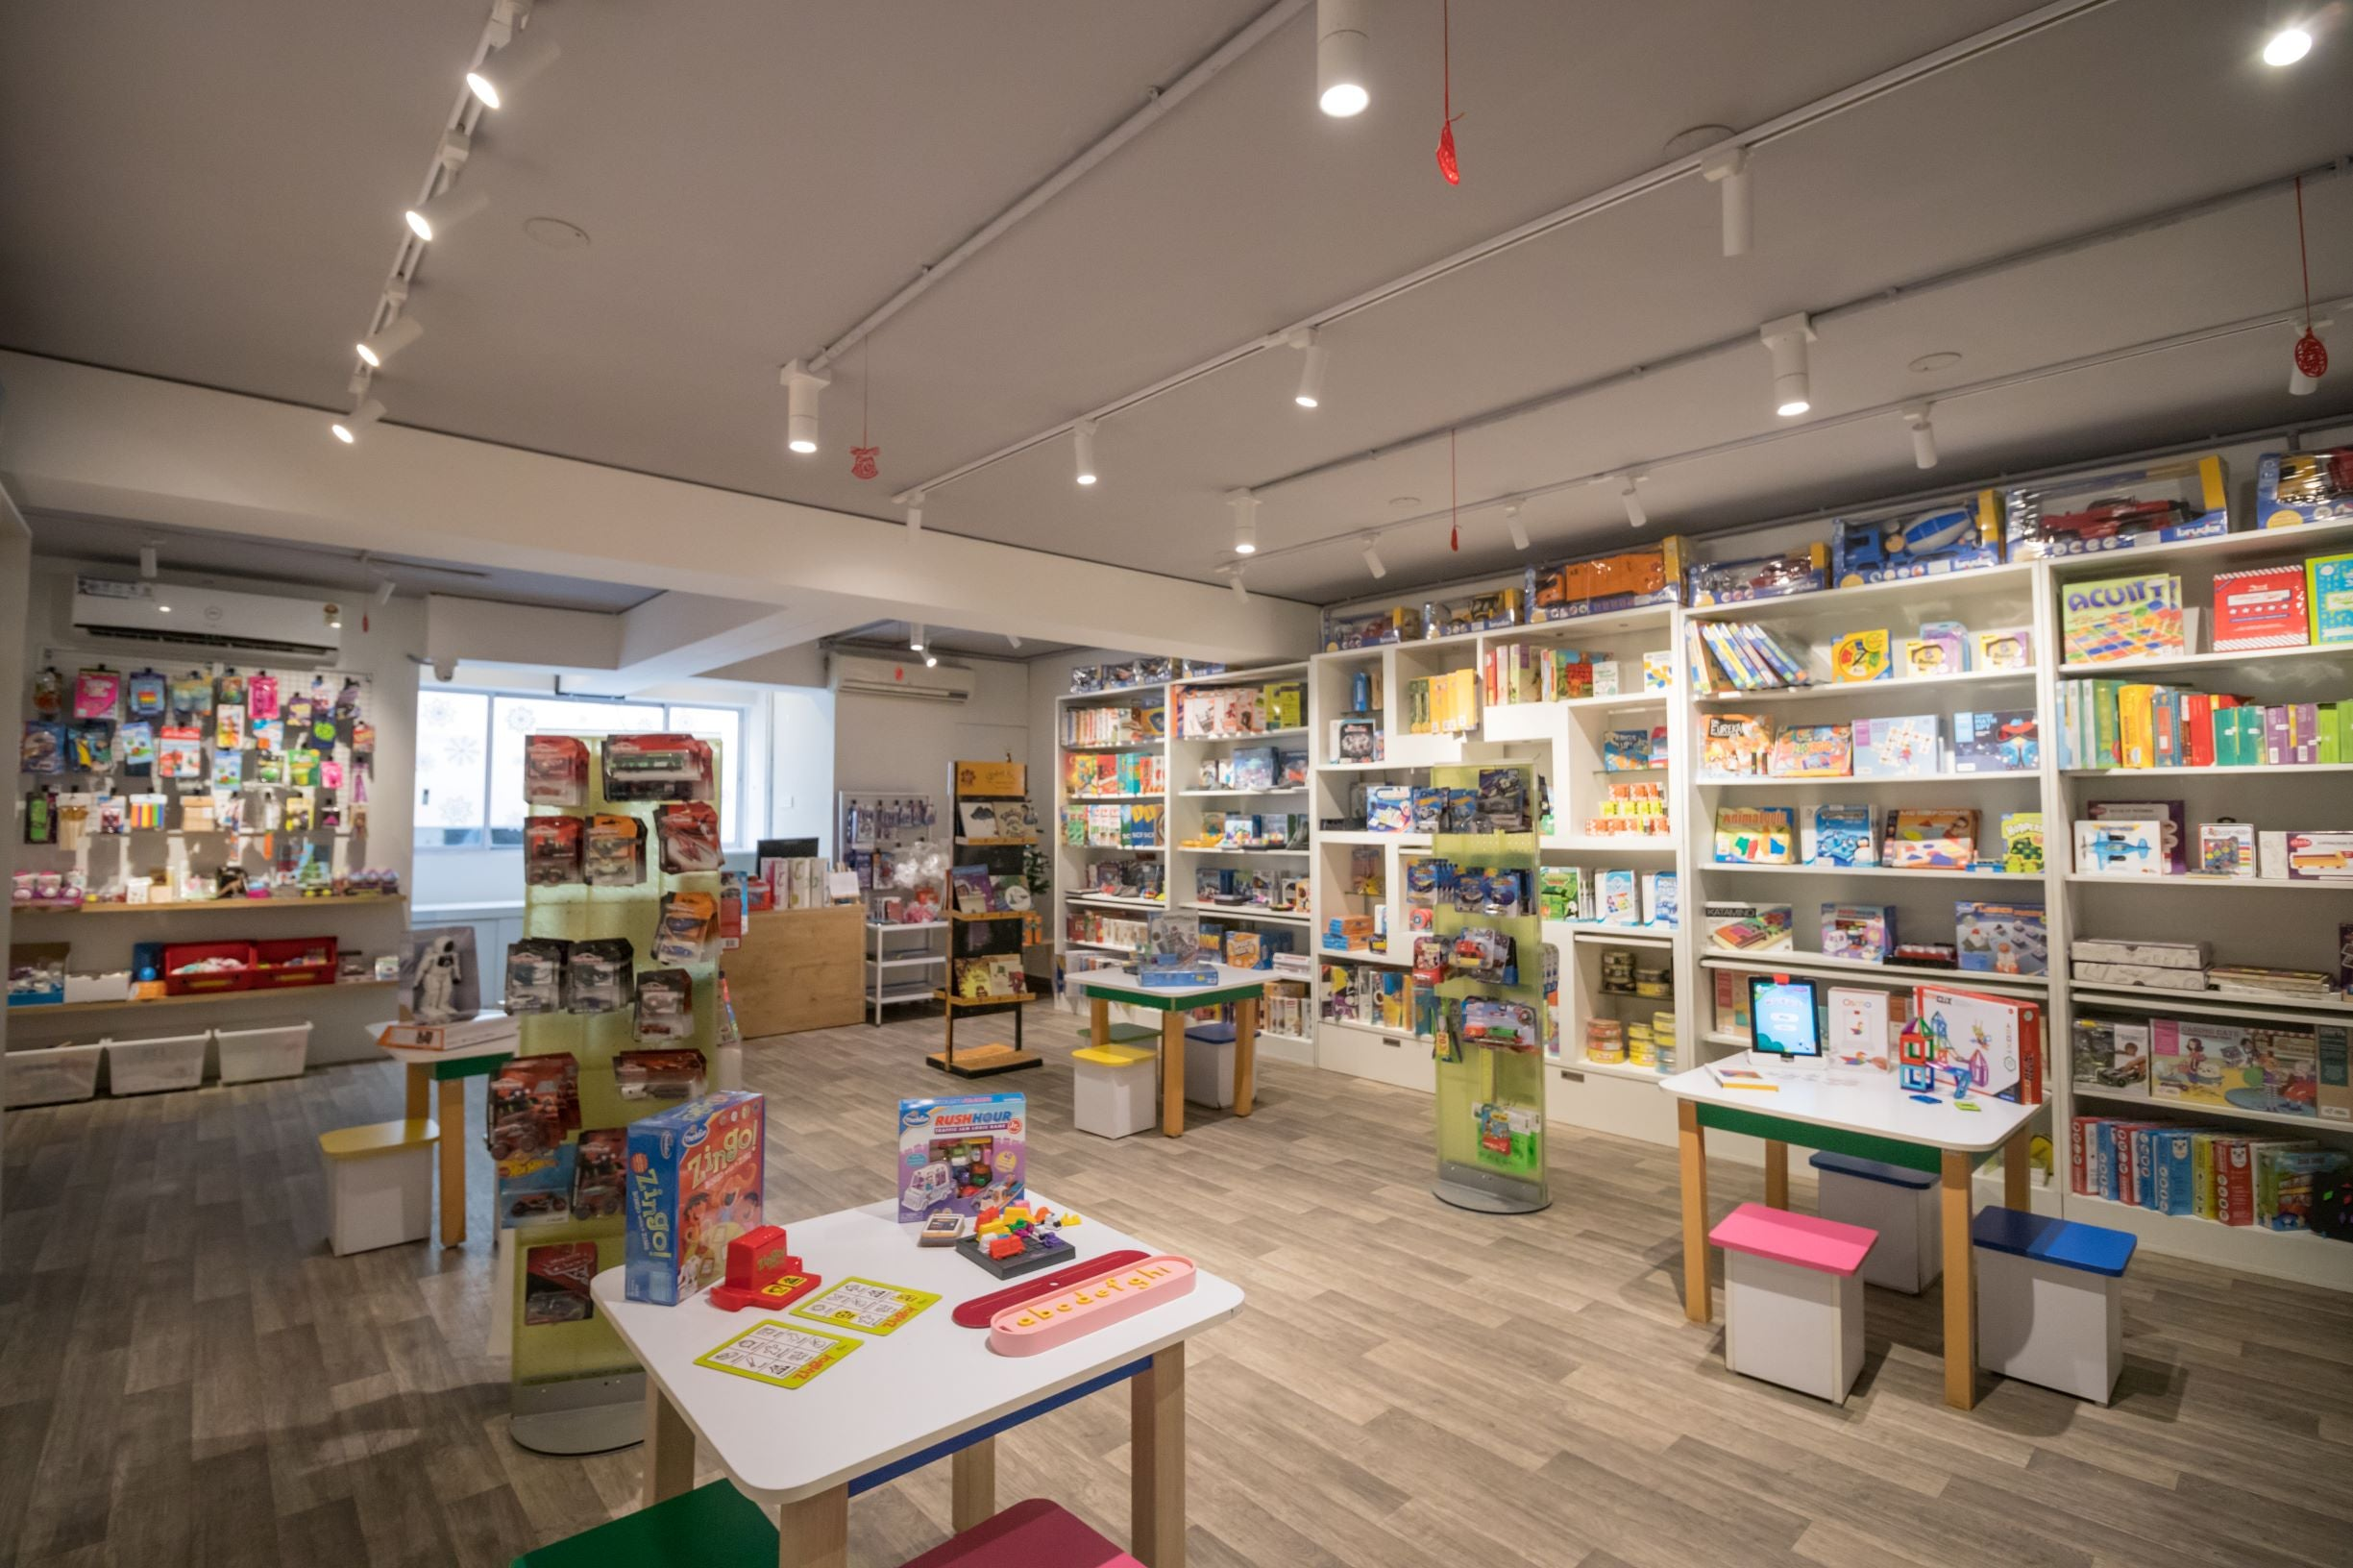 Full of Toys - The Experience Store